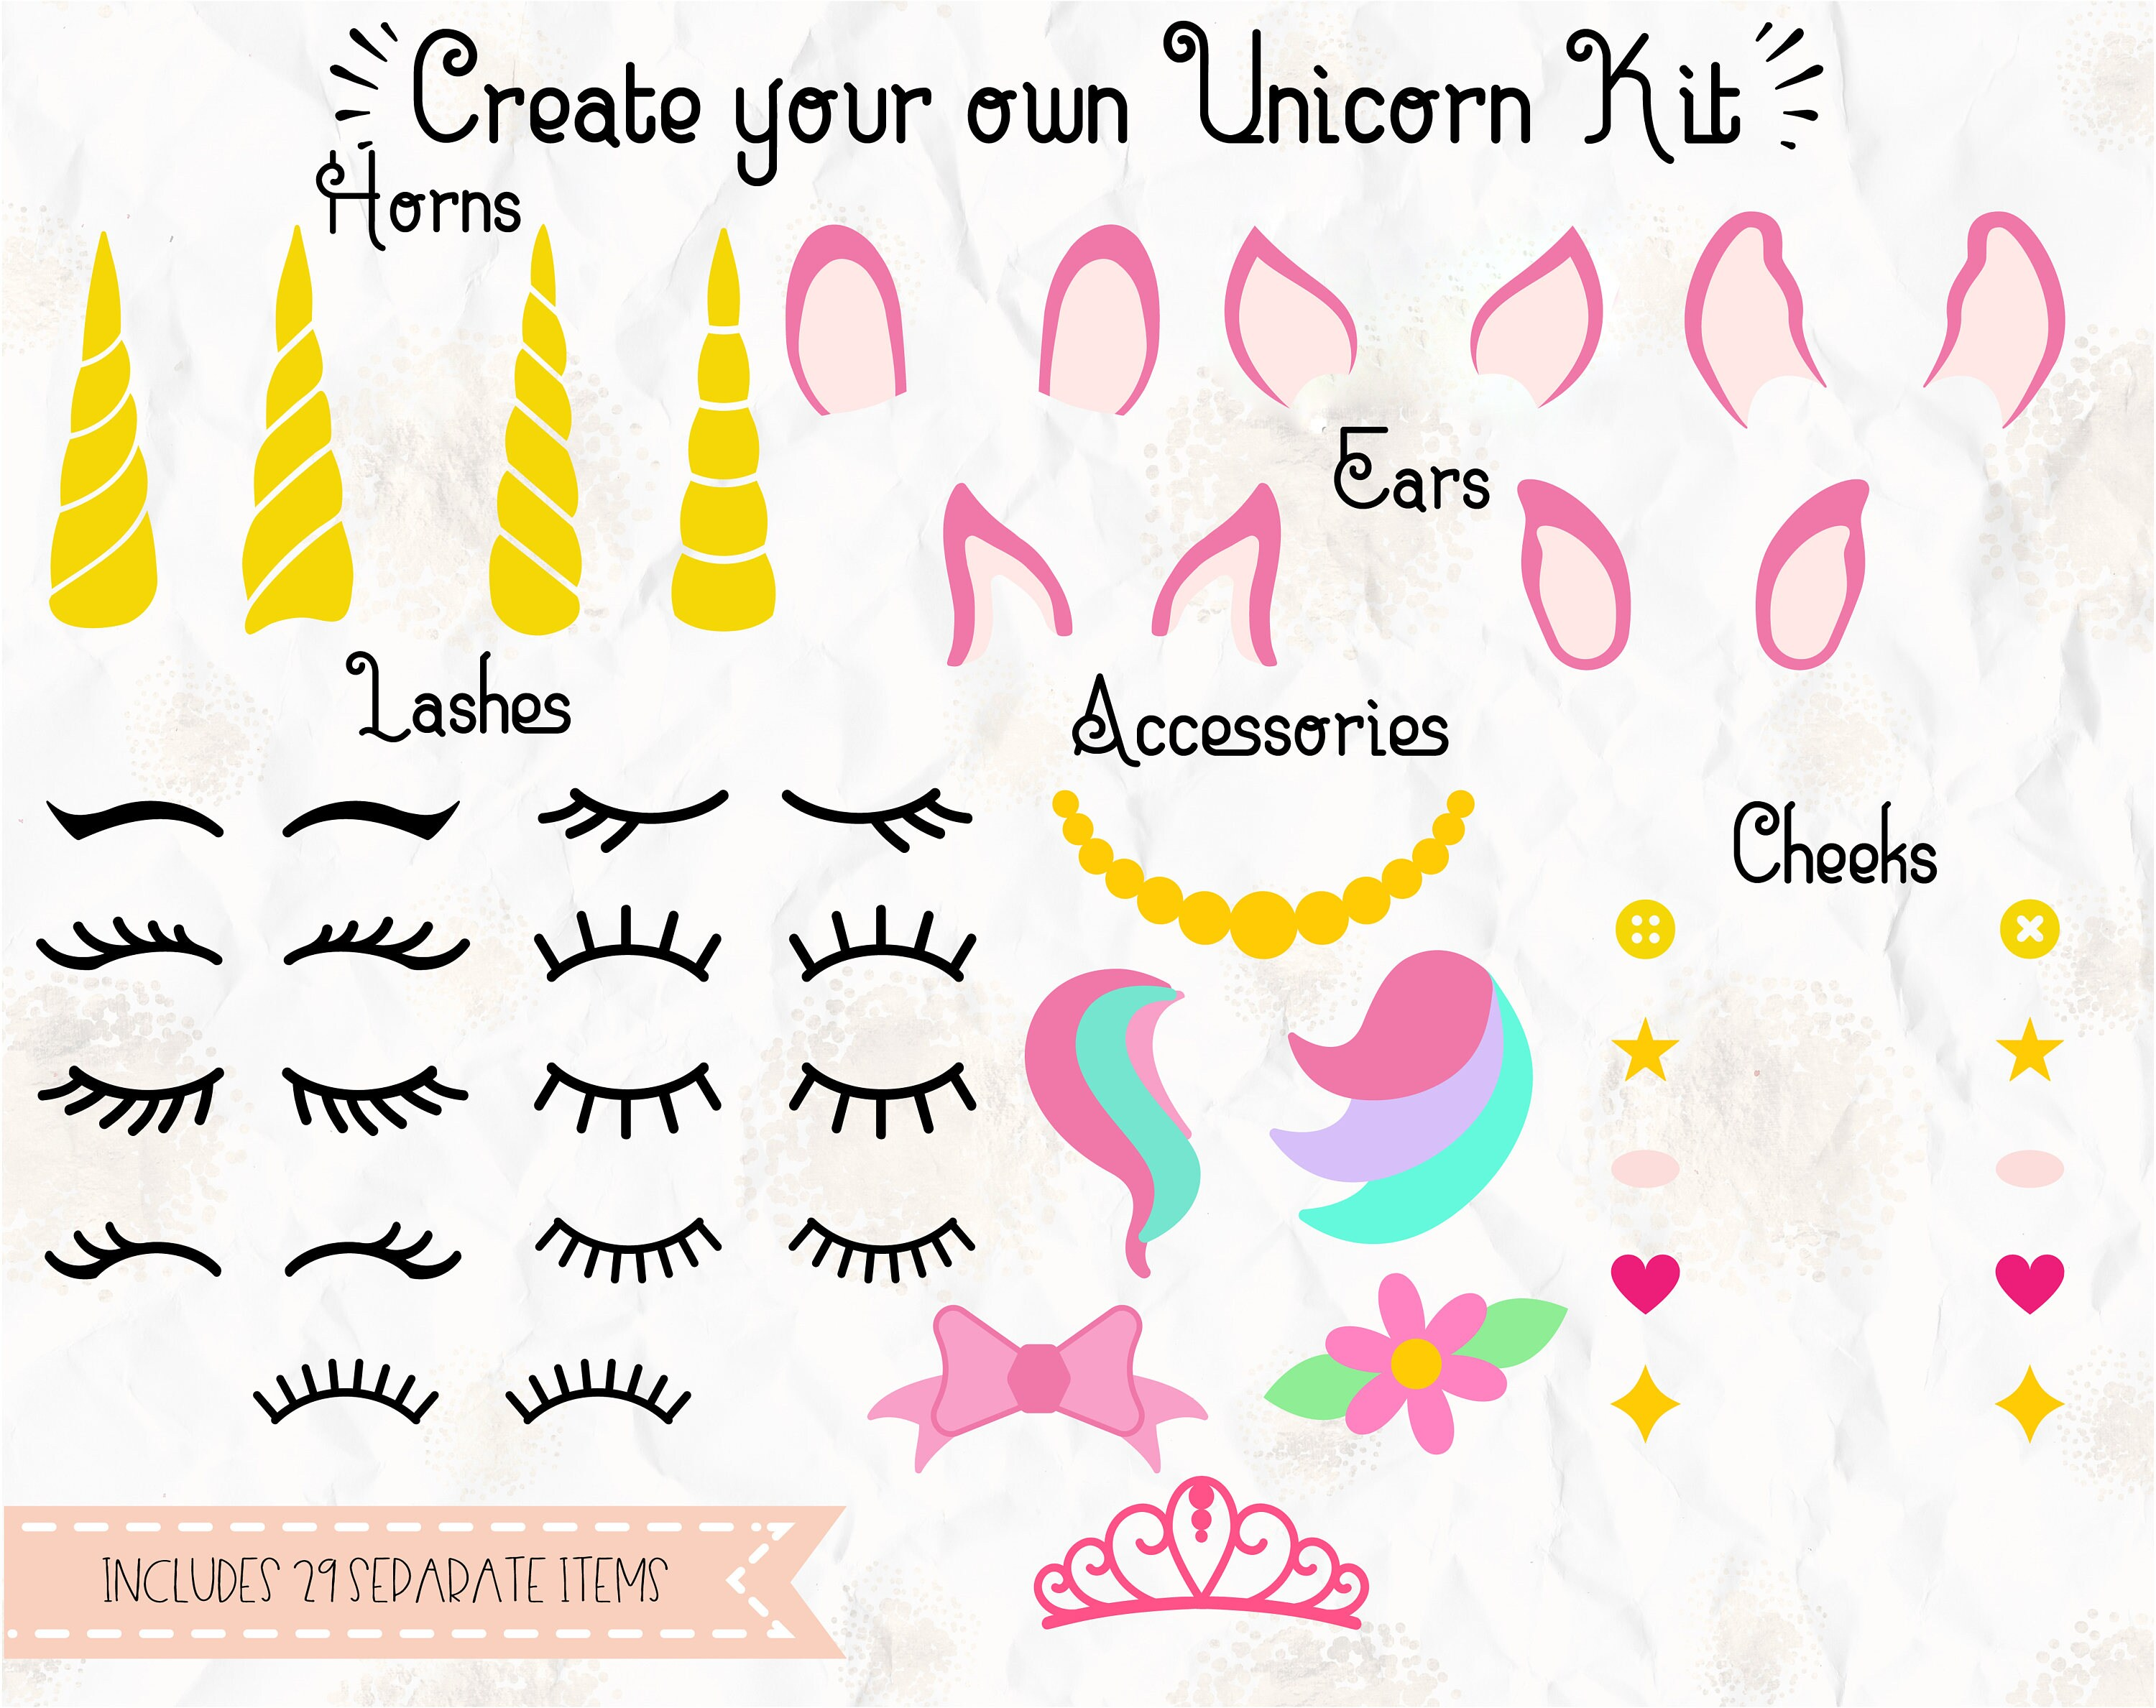 Create Your Own Unicorn Kit Unicorn Lashes Tiara Bow